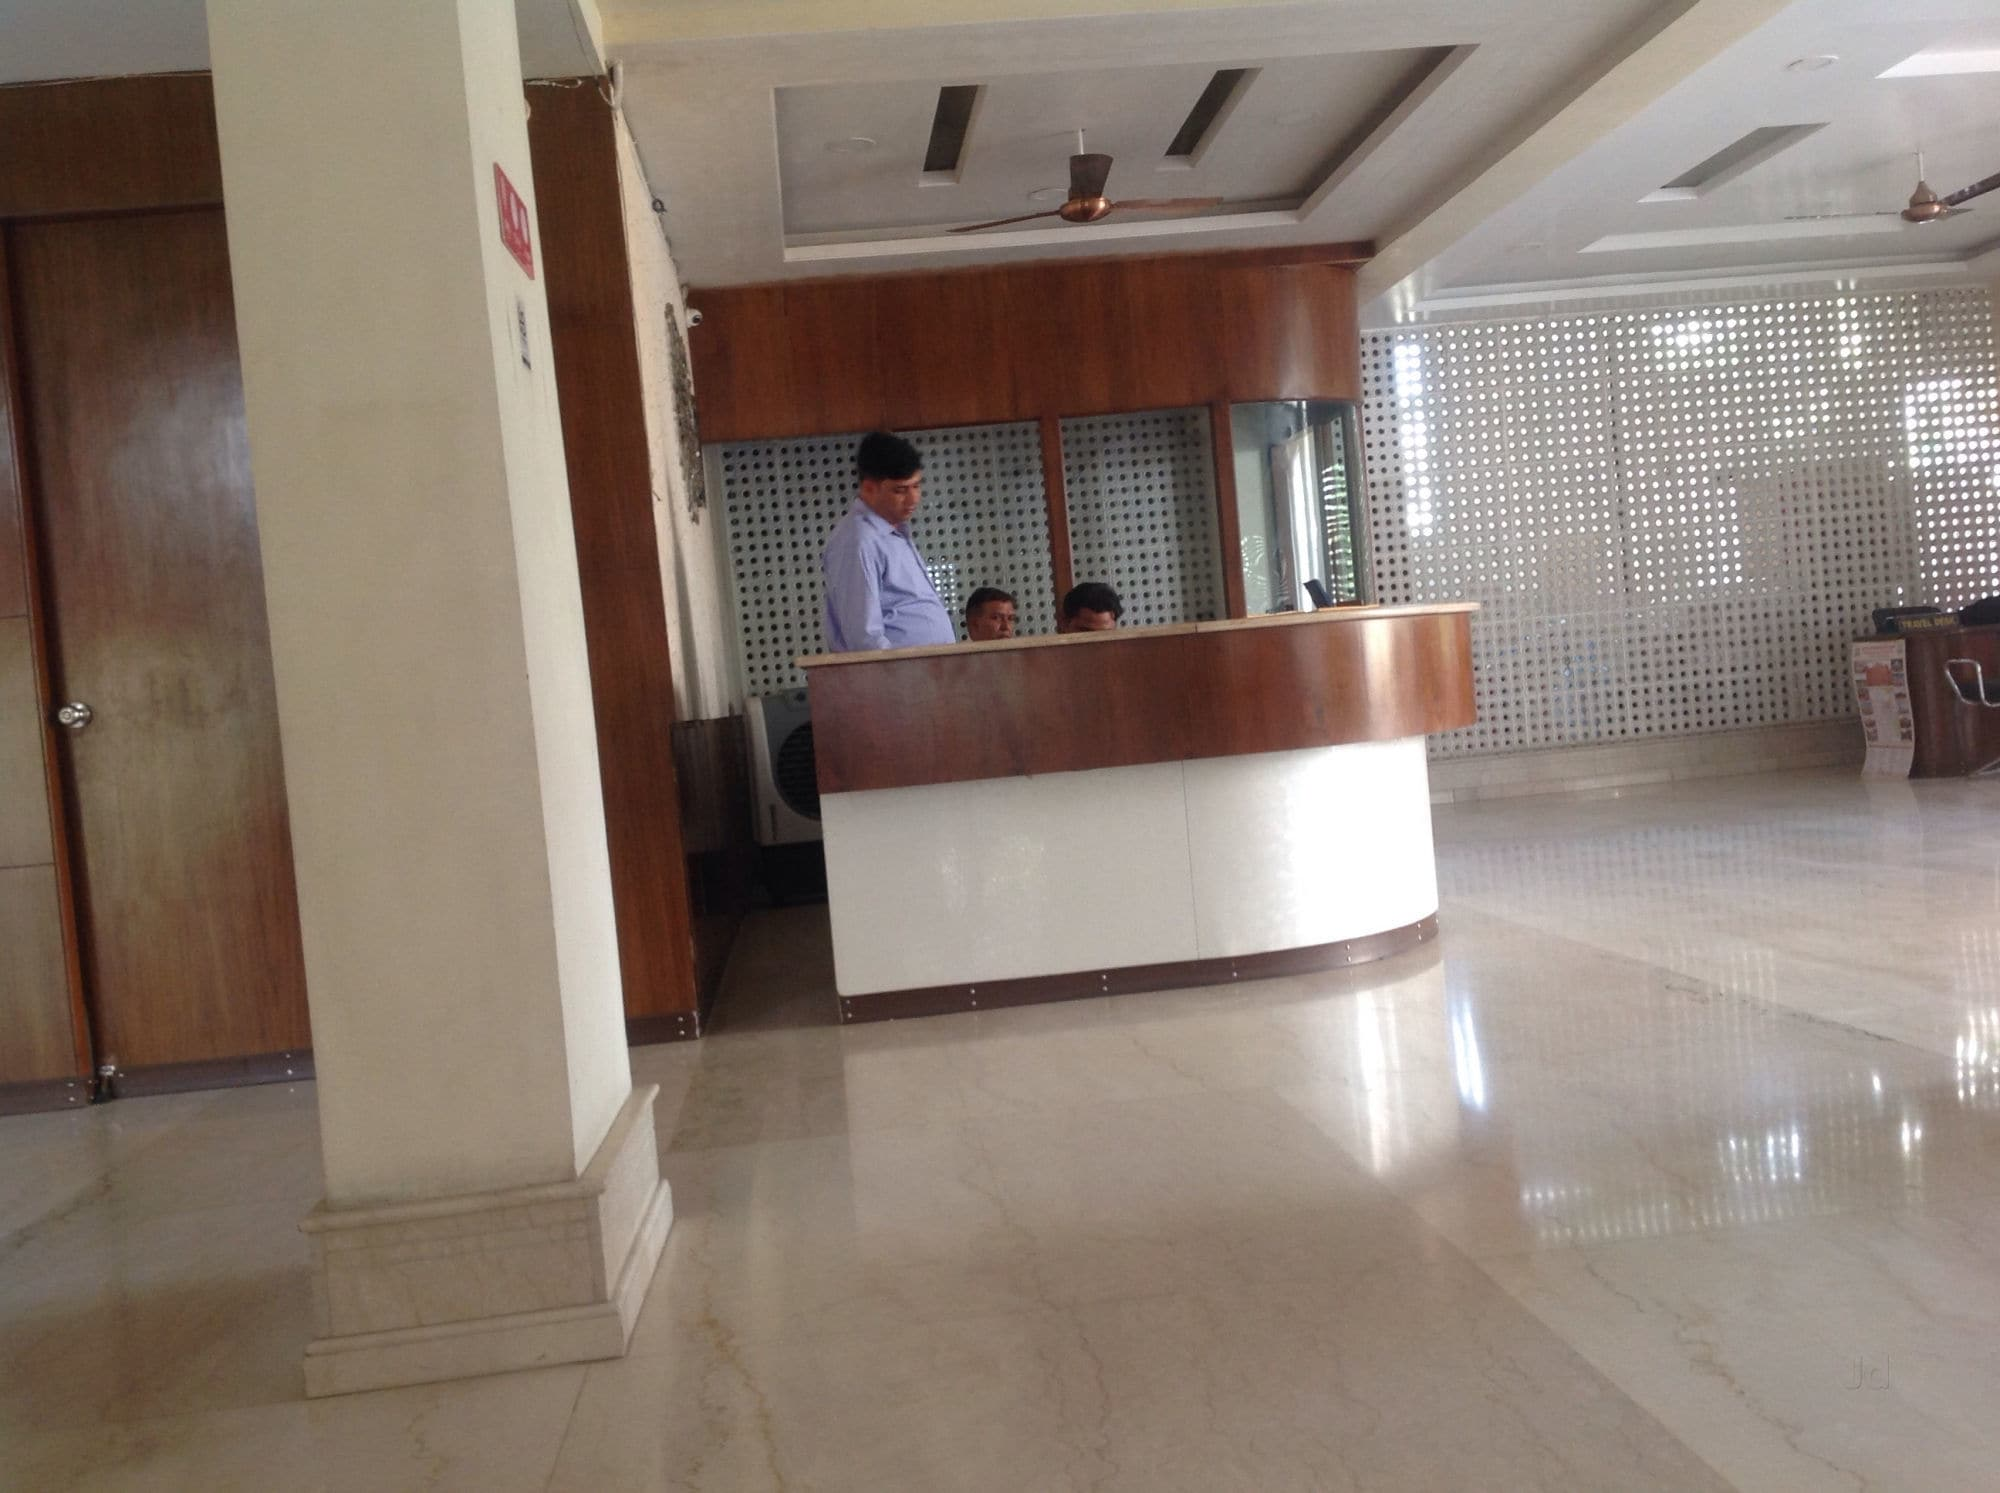 3 Star Hotels In Jaipur Budget Hotel Room Accommodation Justdial